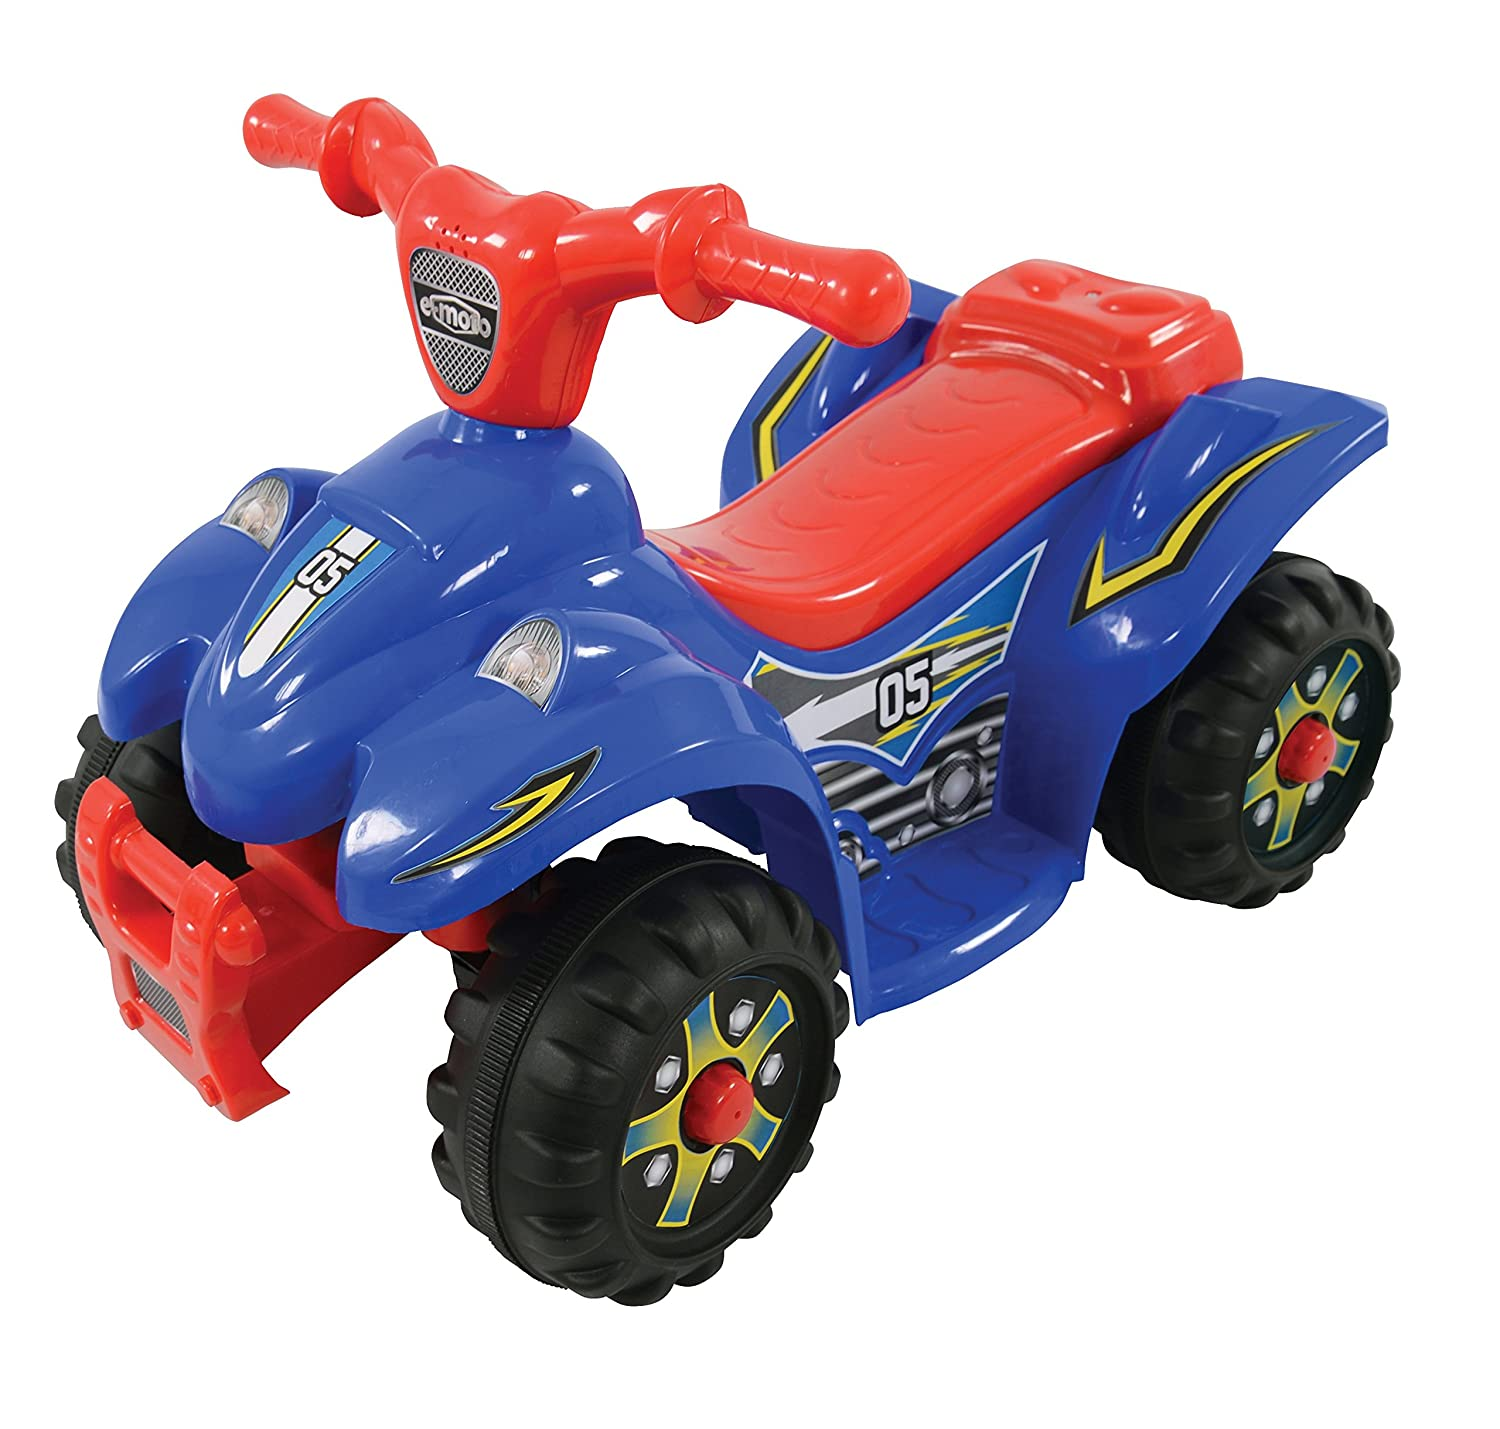 EMOTO M09258 Boys Mini Quad with 6 V battery MV Sports and Leisure Ltd